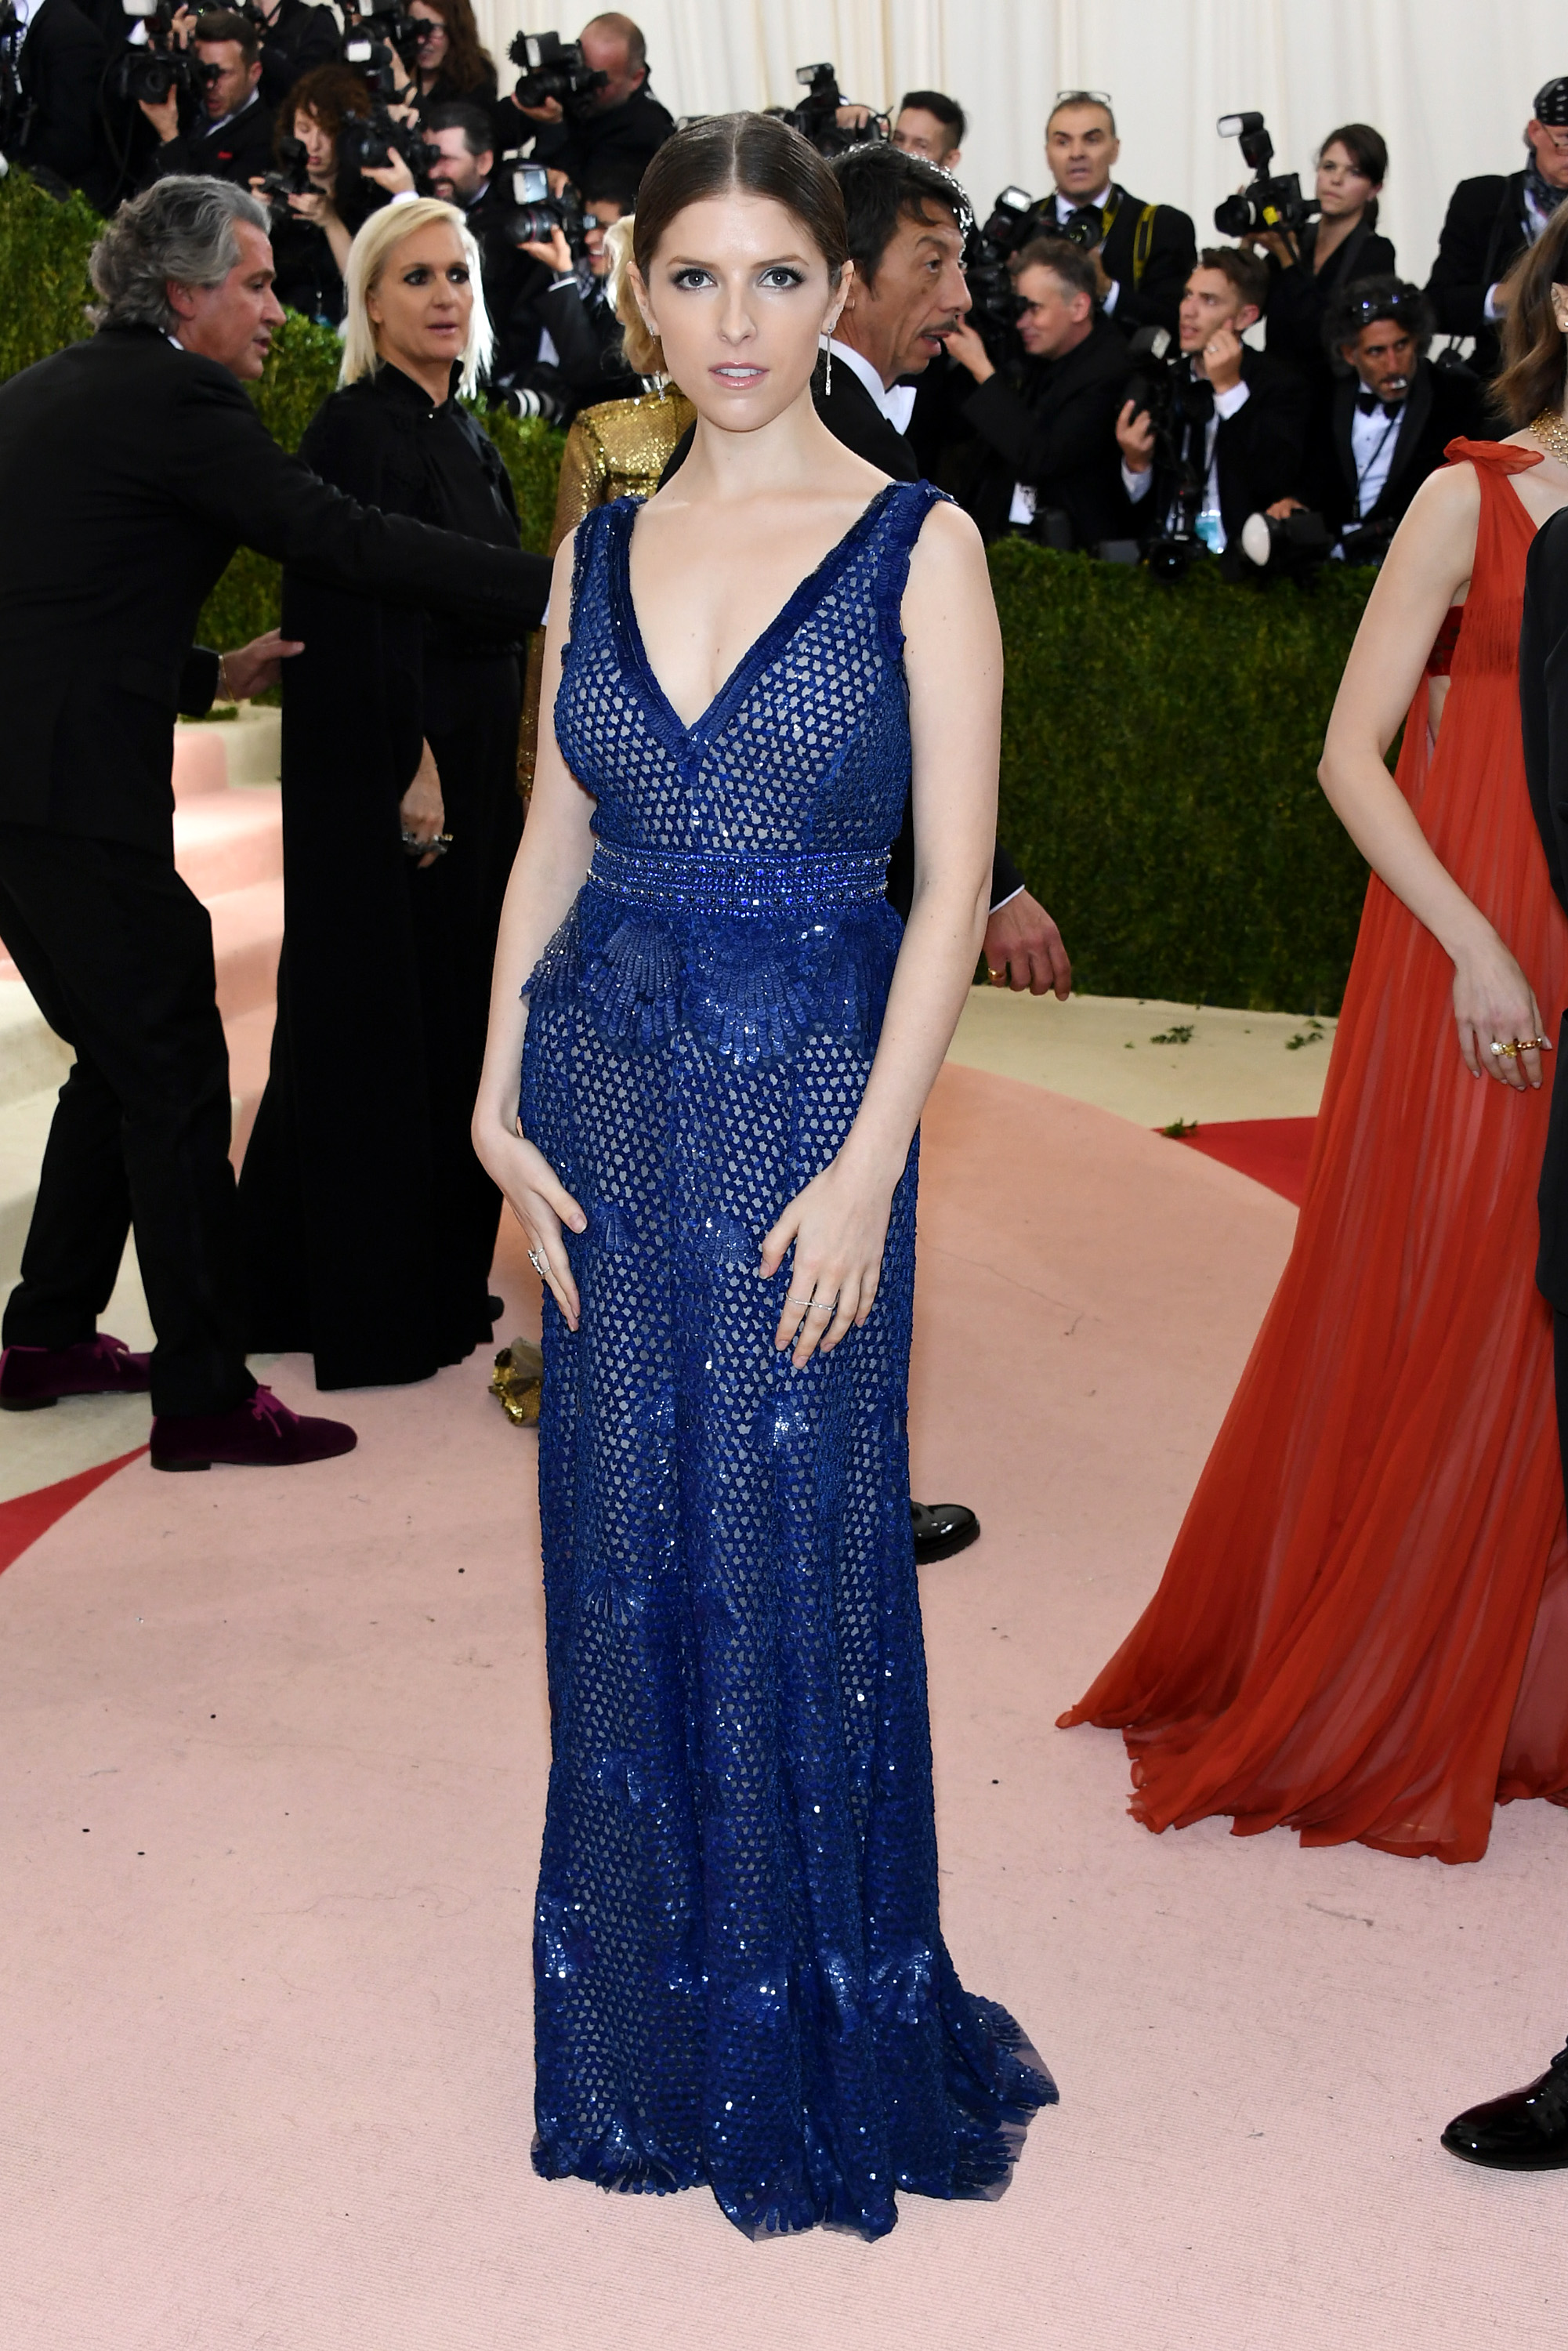 Anna Kendrick attends  Manus x Machina: Fashion In An Age Of Technology  Costume Institute Gala at Metropolitan Museum of Art on May 2, 2016 in New York City.